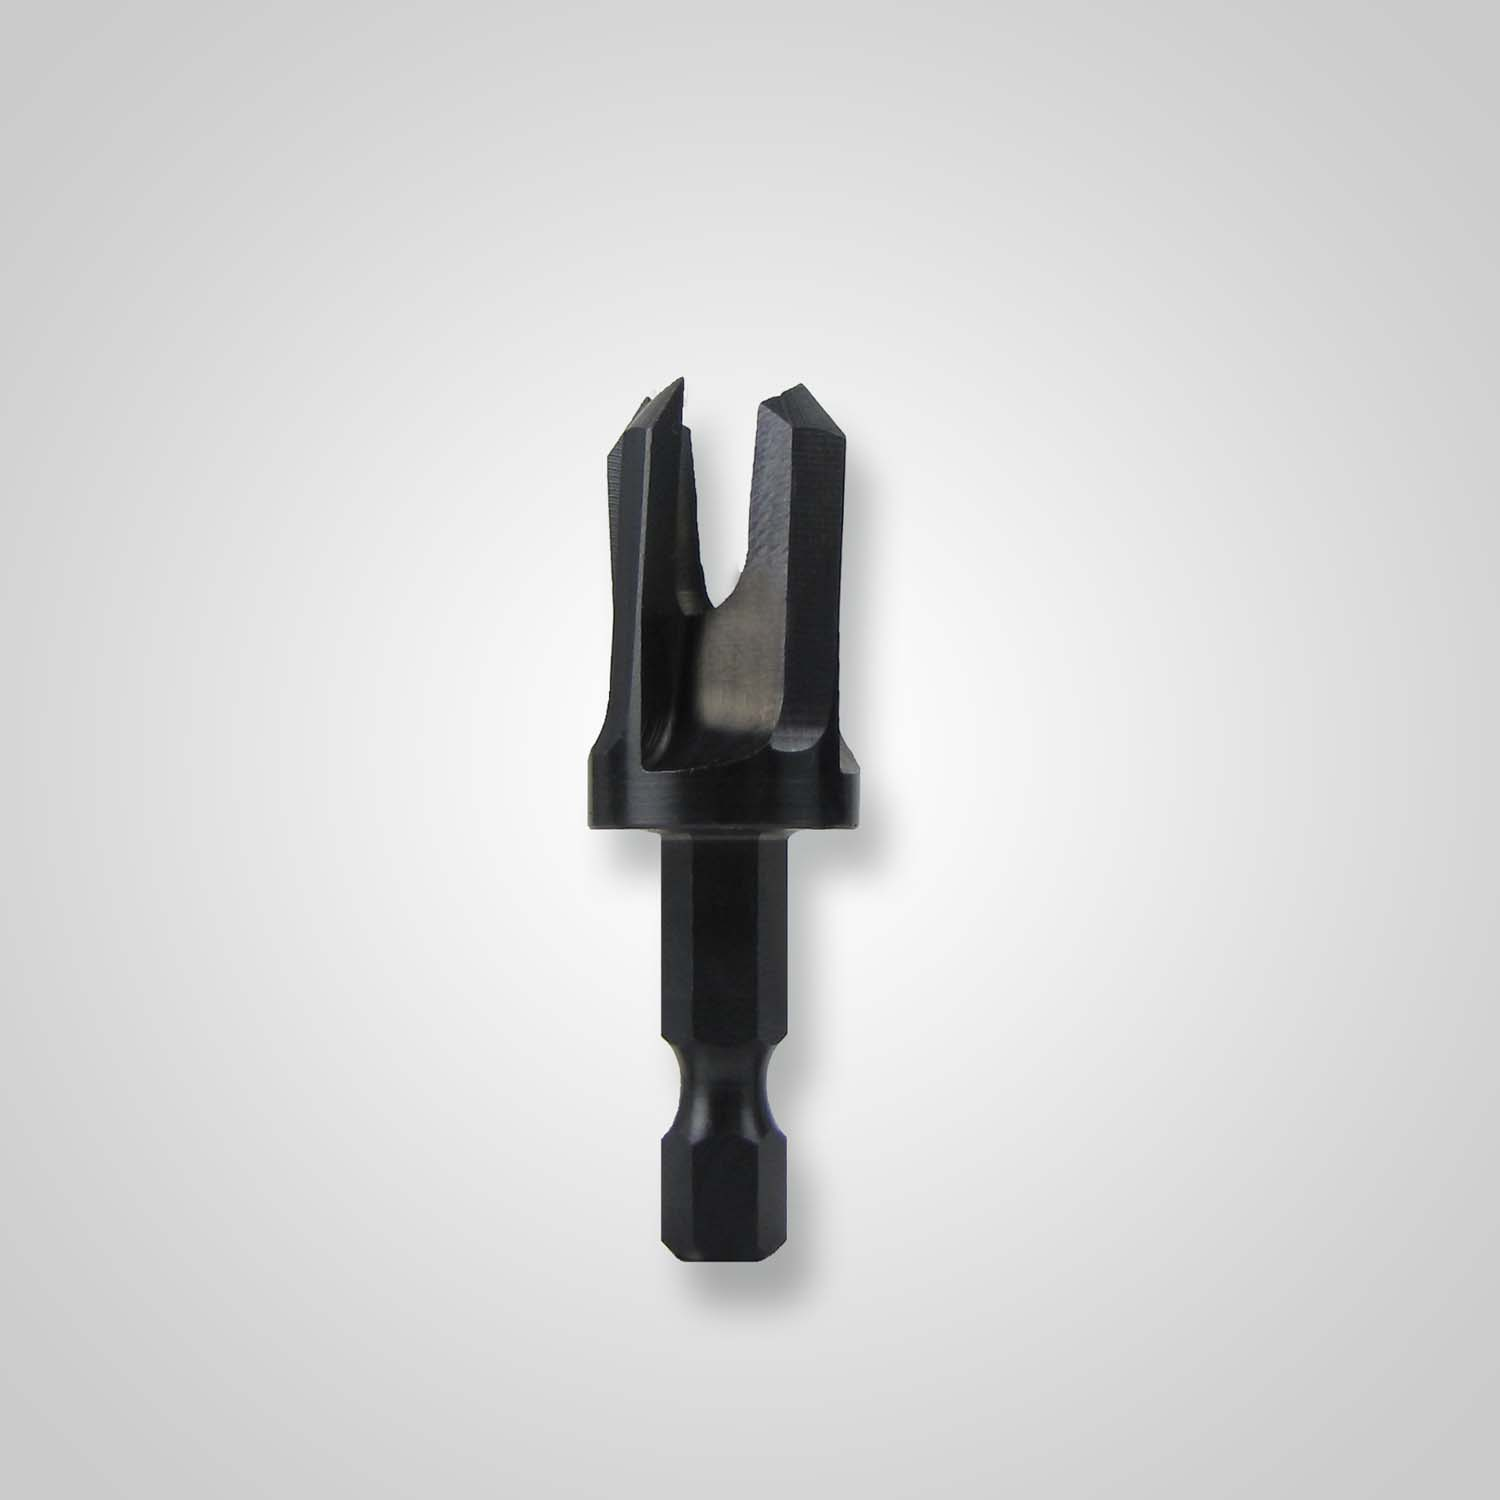 "Snappy 1//4/"" tapered plug cutter w//hex shank"